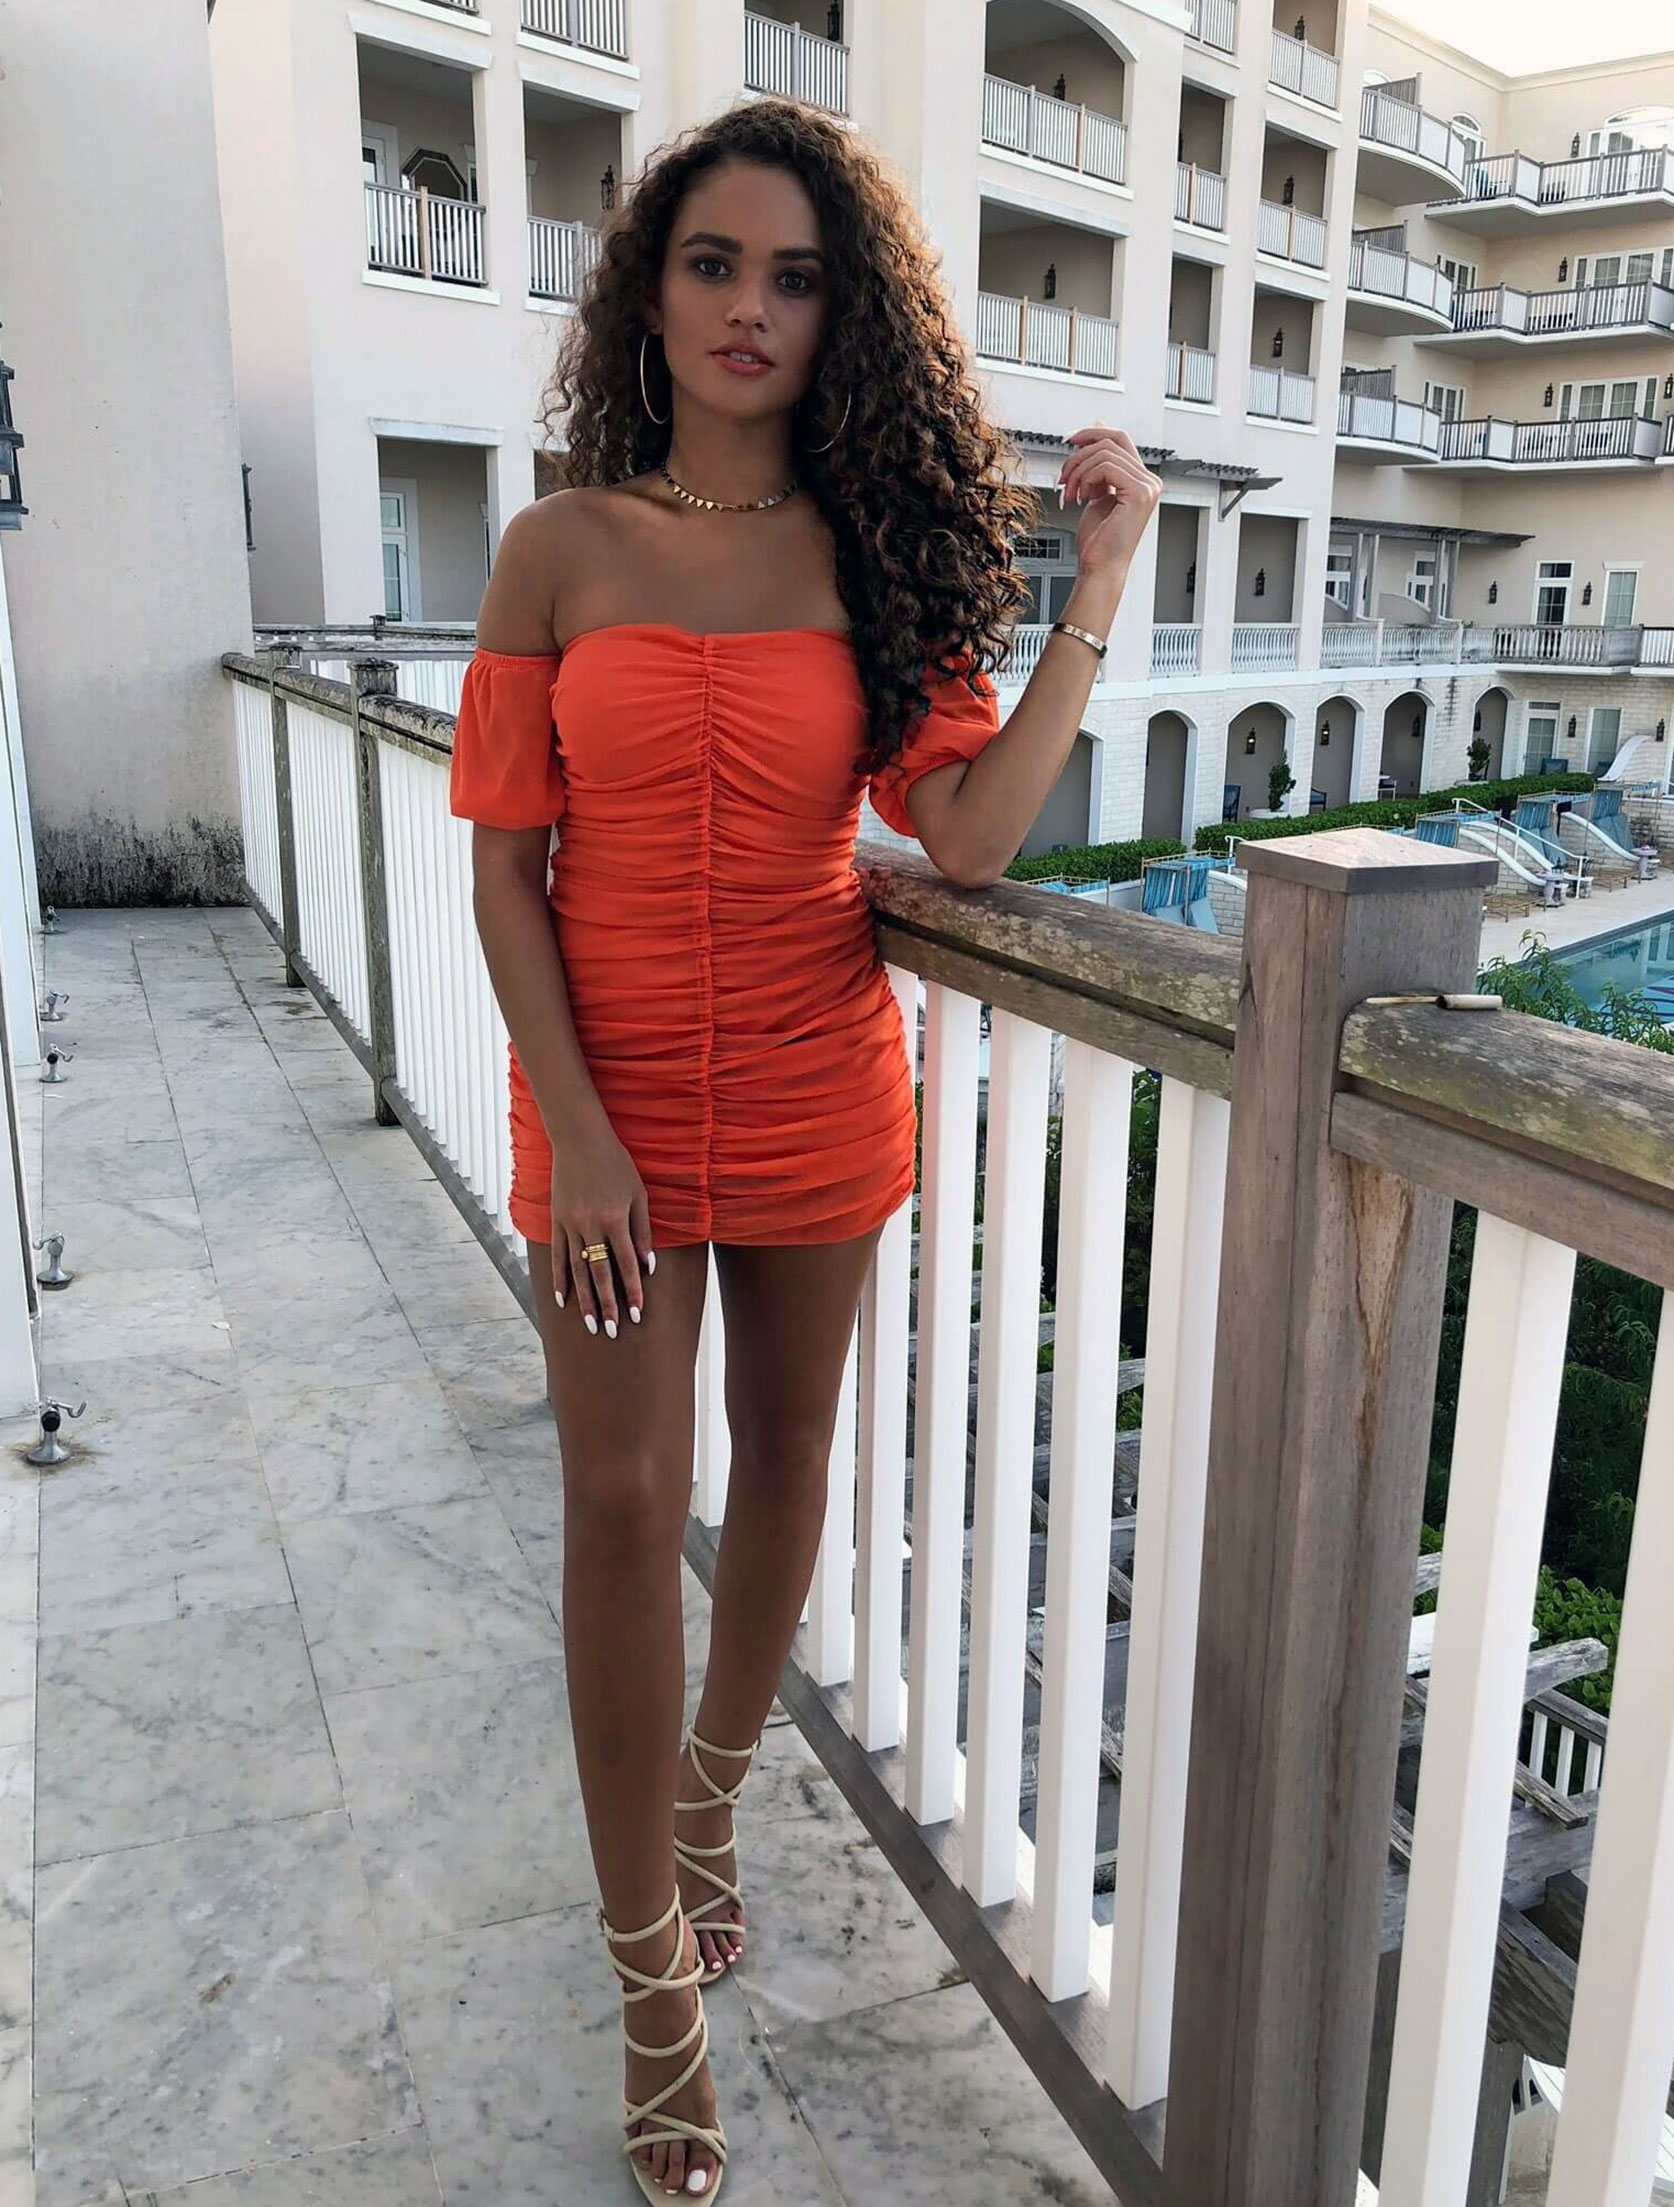 Madison Pettis Nude in Porn Video & Hot Lingerie Photos